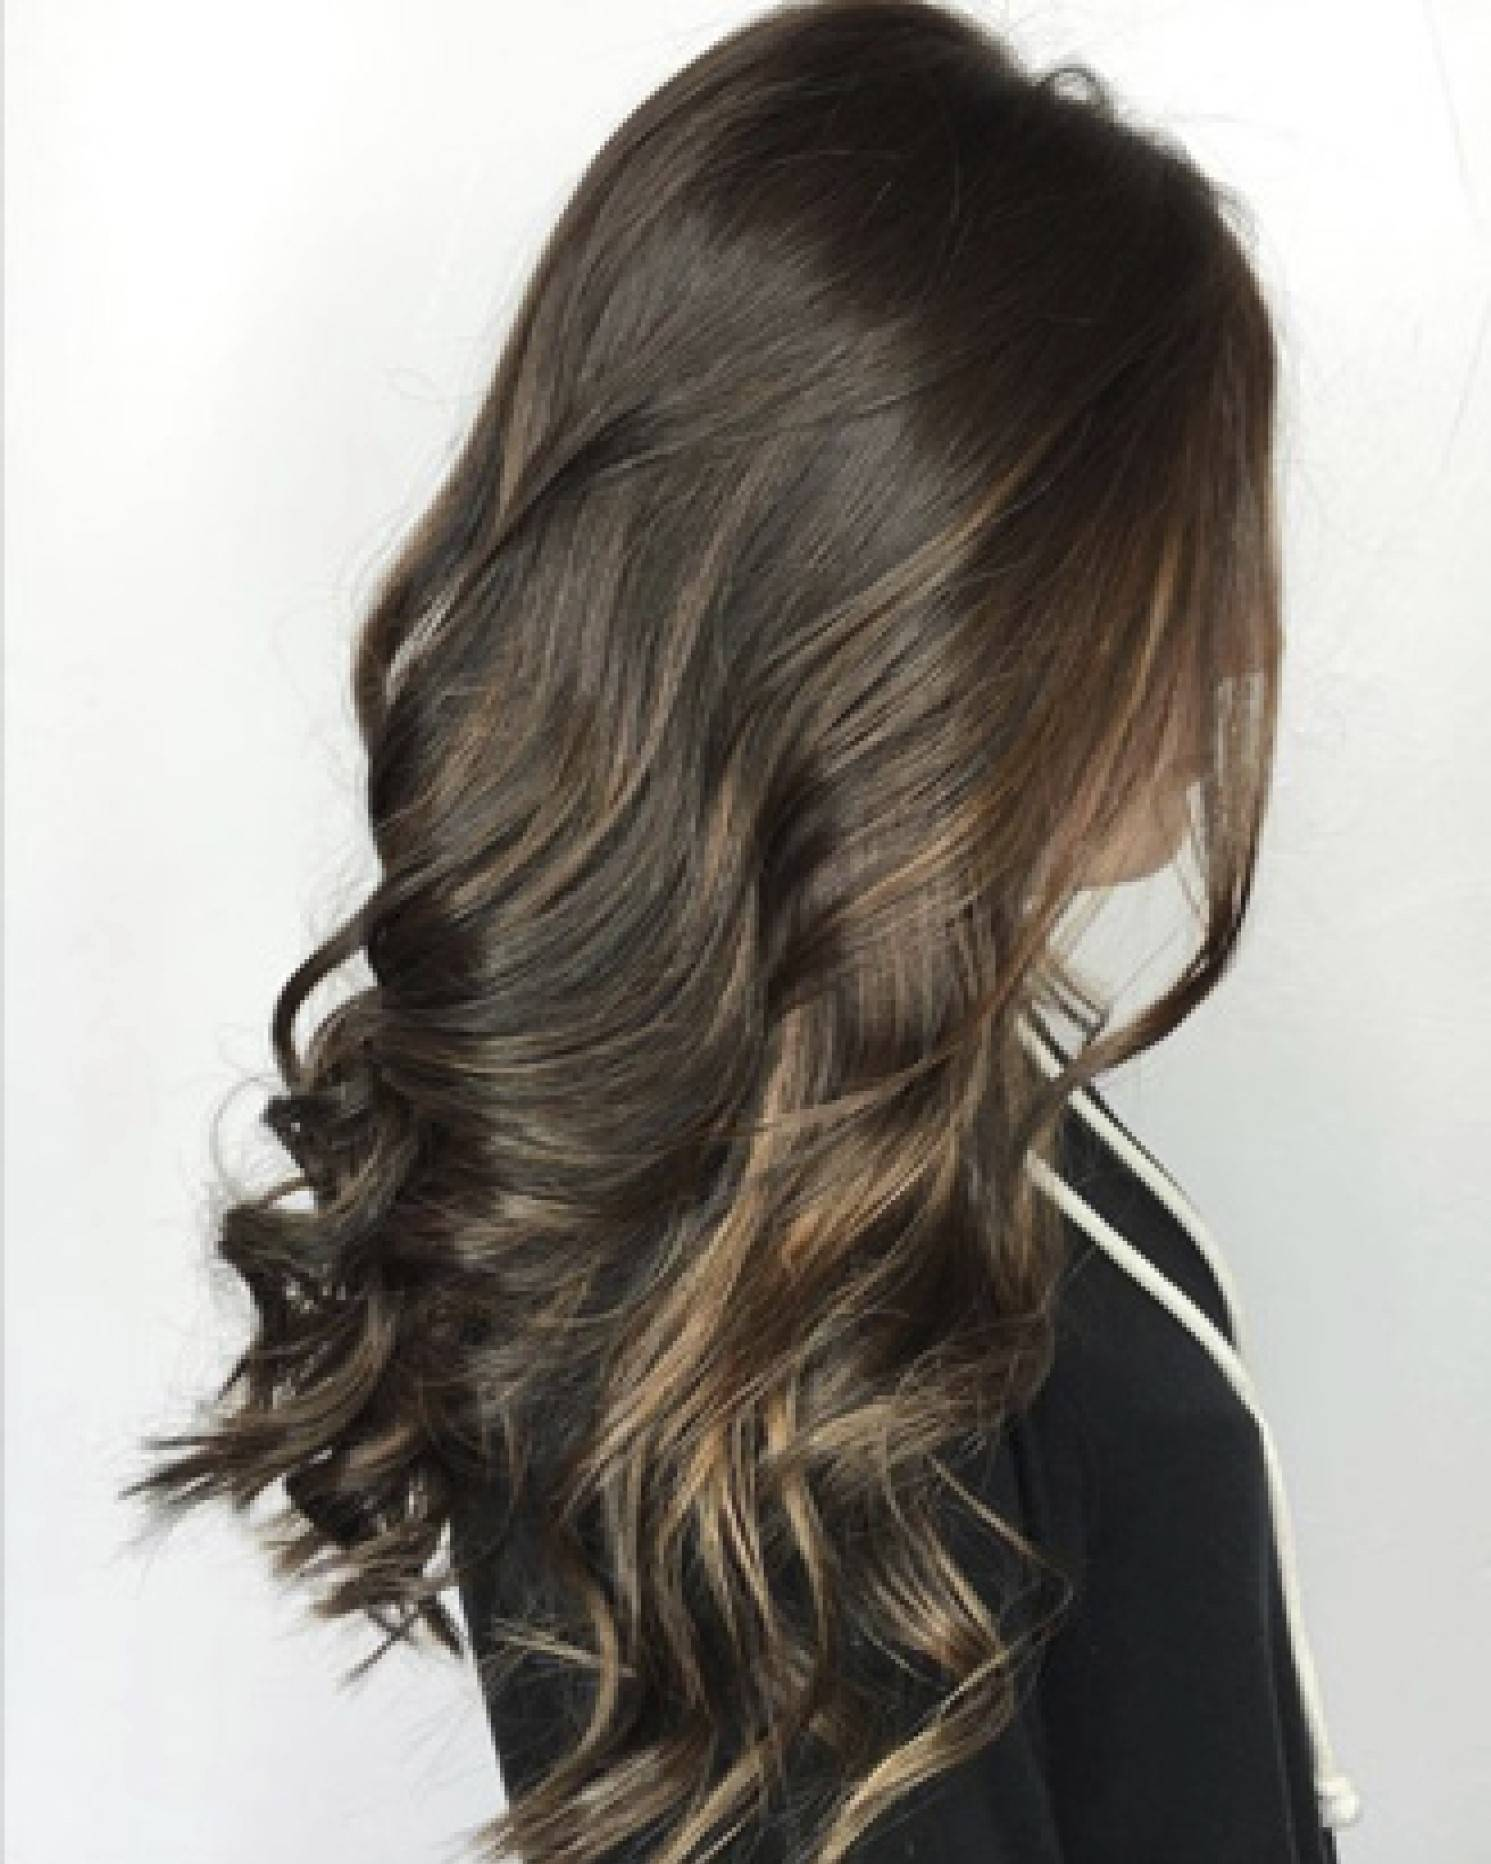 Shiny curled long brunette brown hair